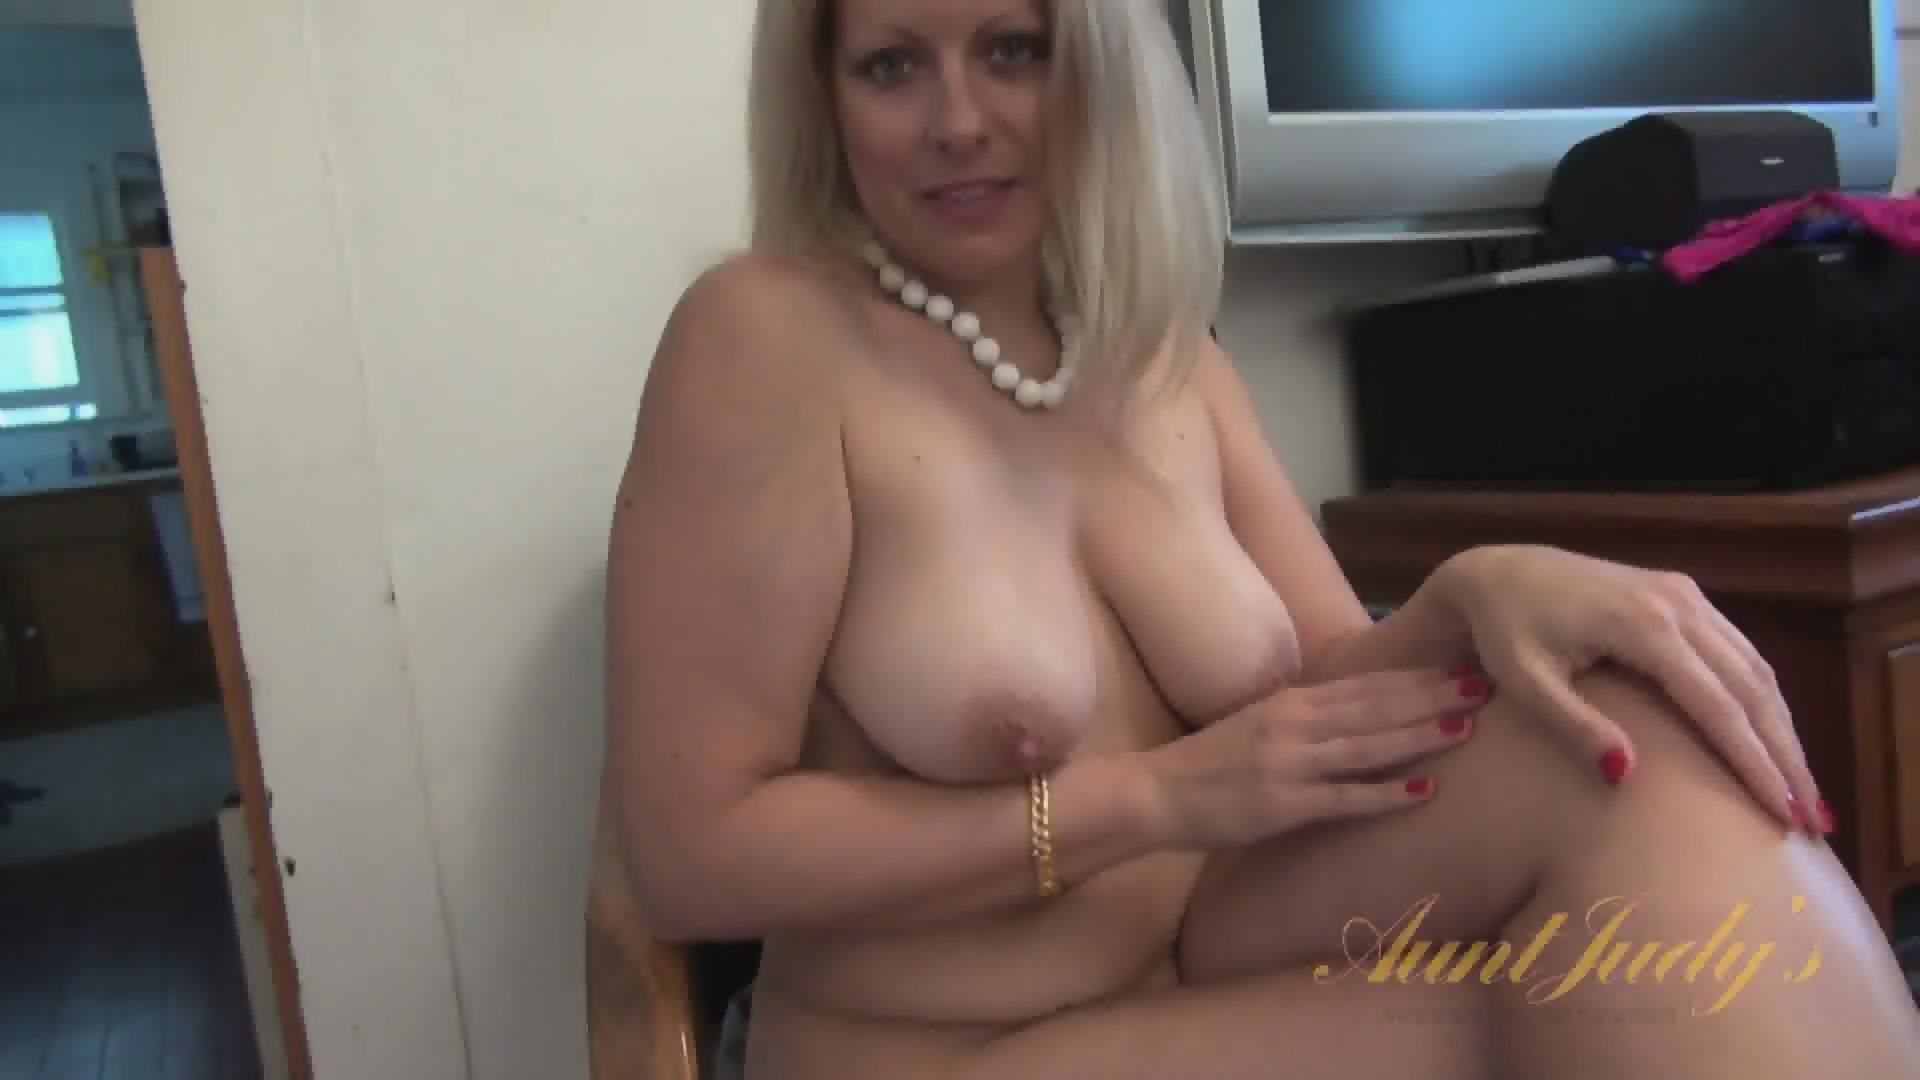 Interview With Naked Mom - EPORNER: https://www.eporner.com/hd-porn/3VjP8TtOP6s/Interview-With-Naked-Mom/